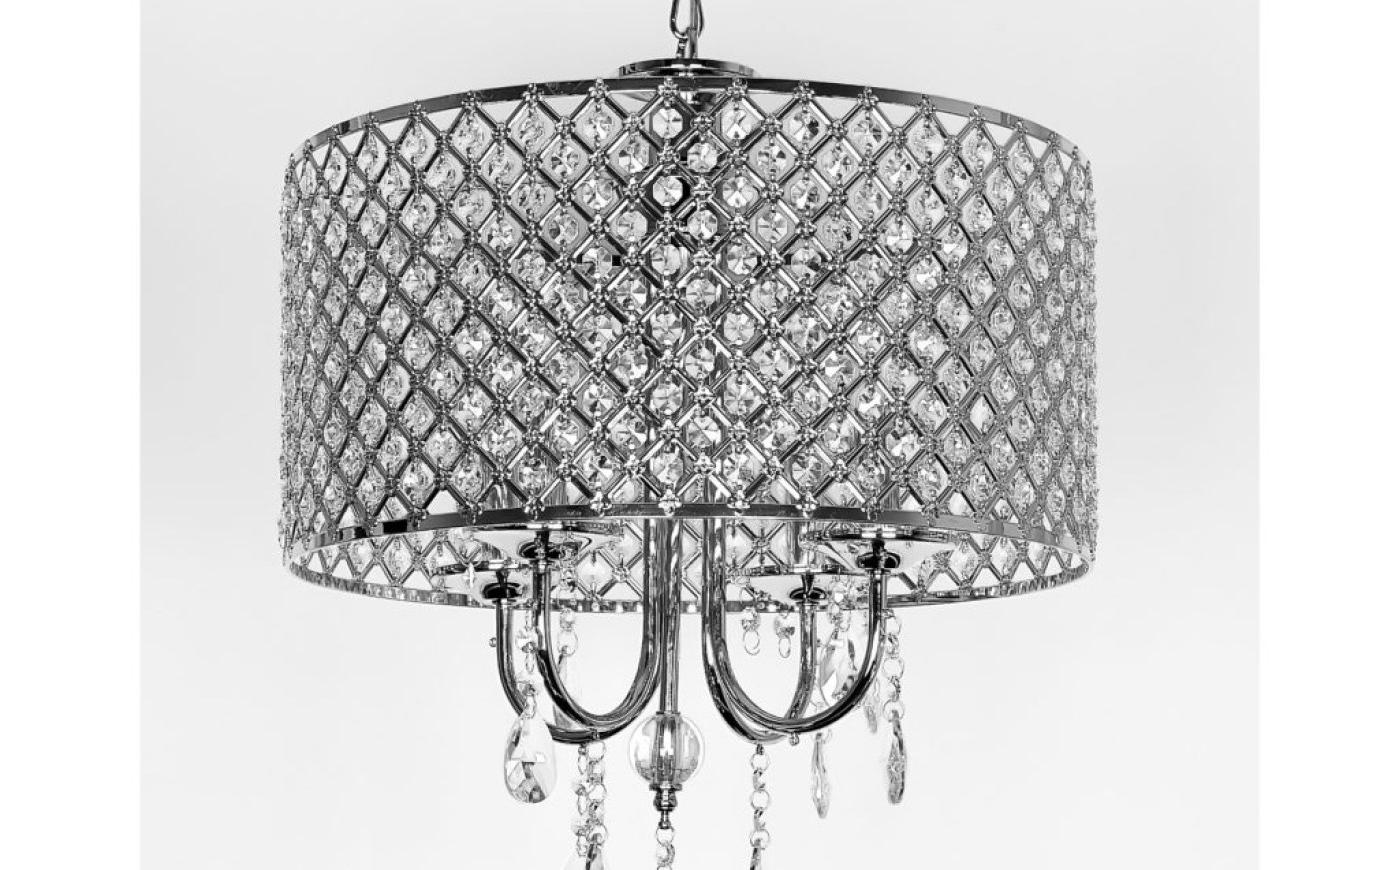 Current Chandeliers Design : Amazing Black Chandelier Ceiling Fan With Regarding Chandelier Light Fixture For Ceiling Fan (View 5 of 15)